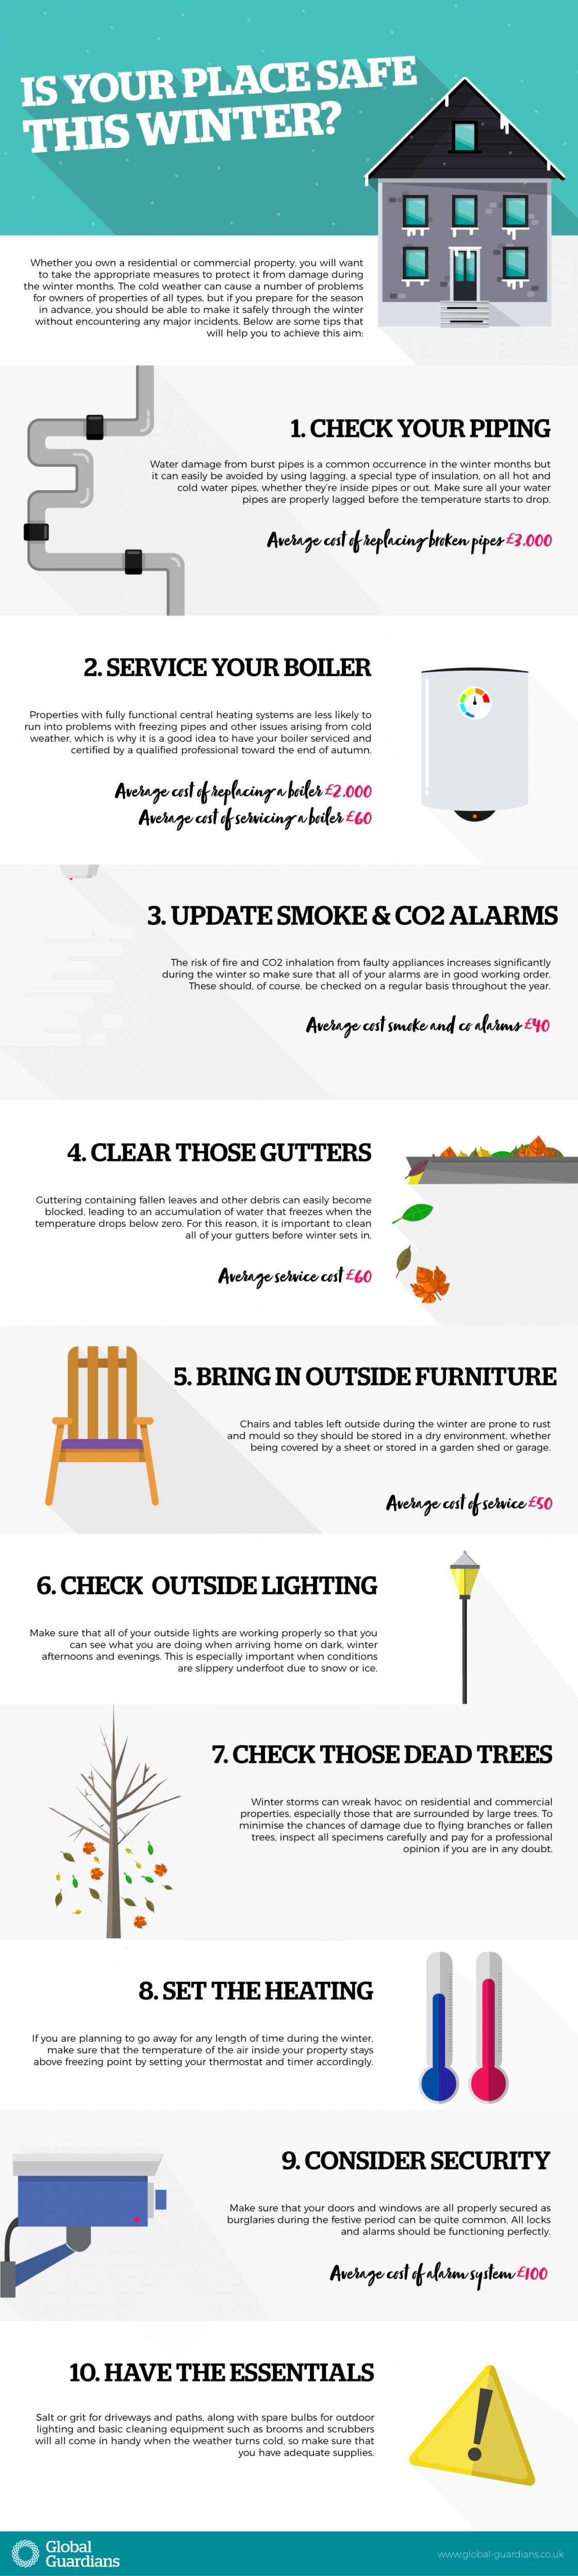 is-your-place-safe-this-winter-infographic